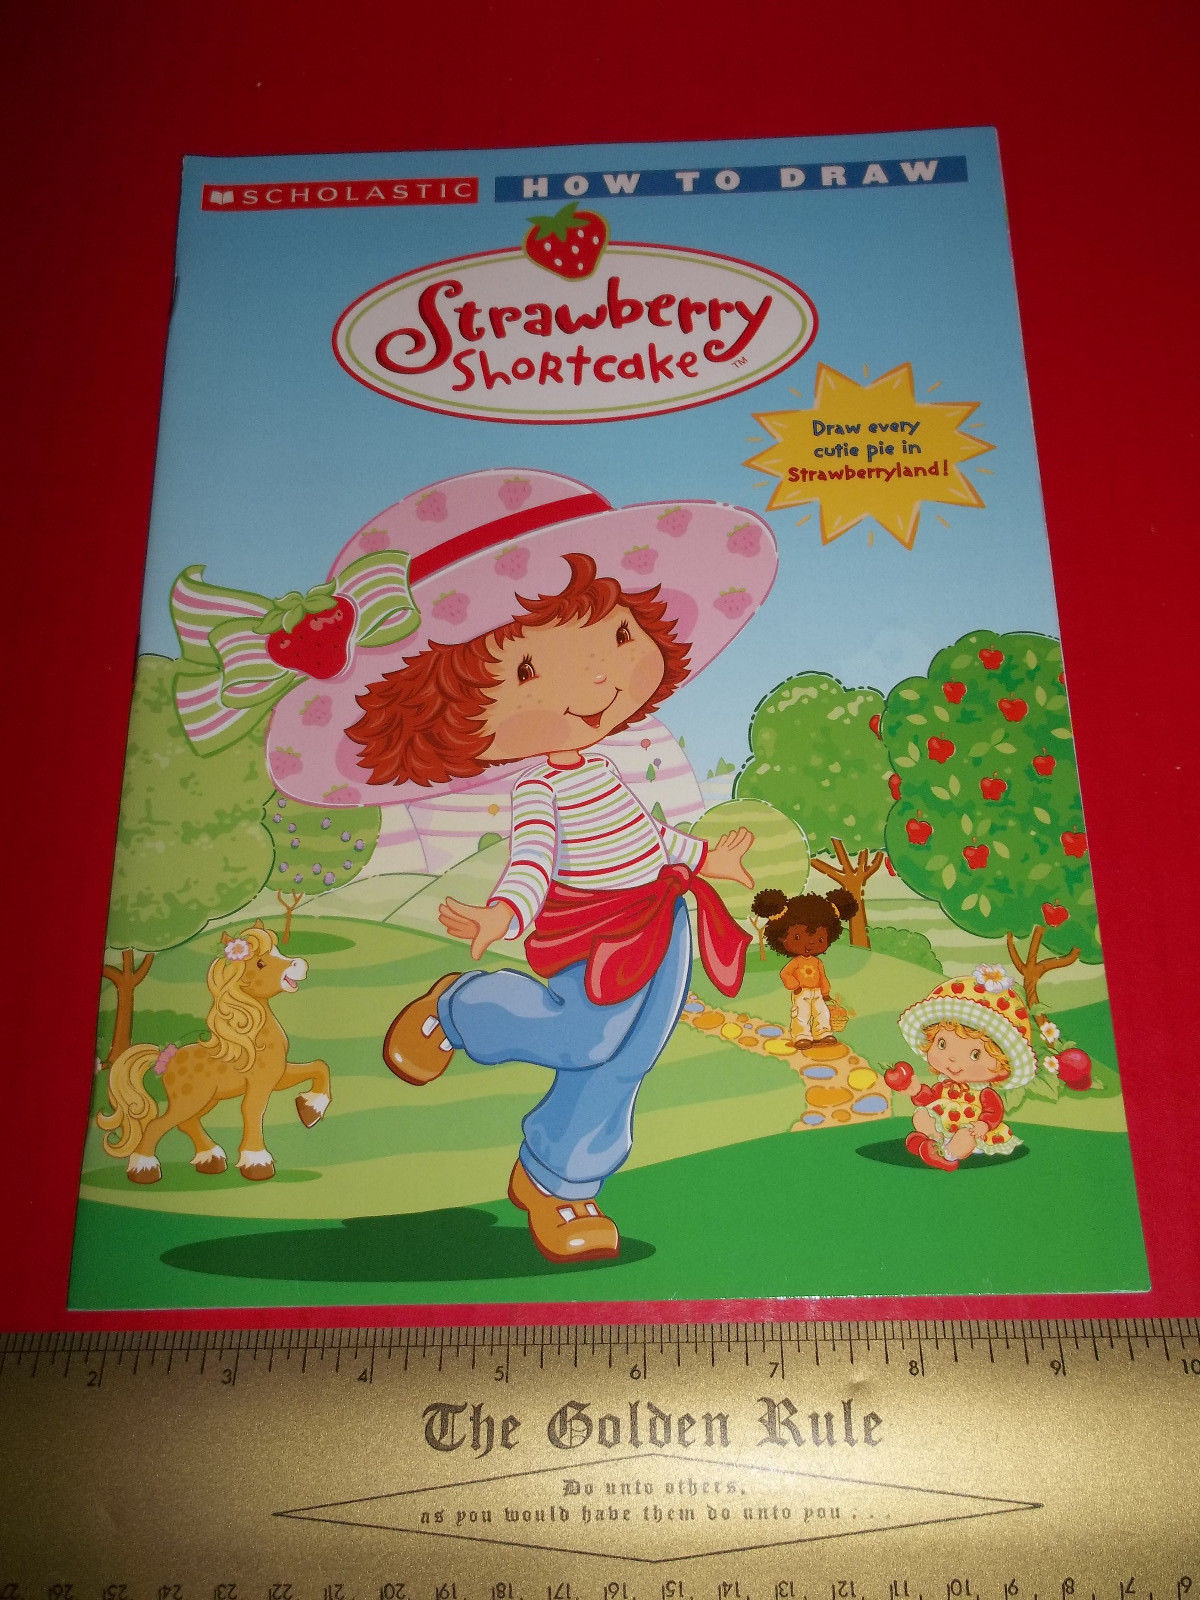 Strawberry Shortcake Craft Book Art Scholastic How To Draw Strawberryland Cuties